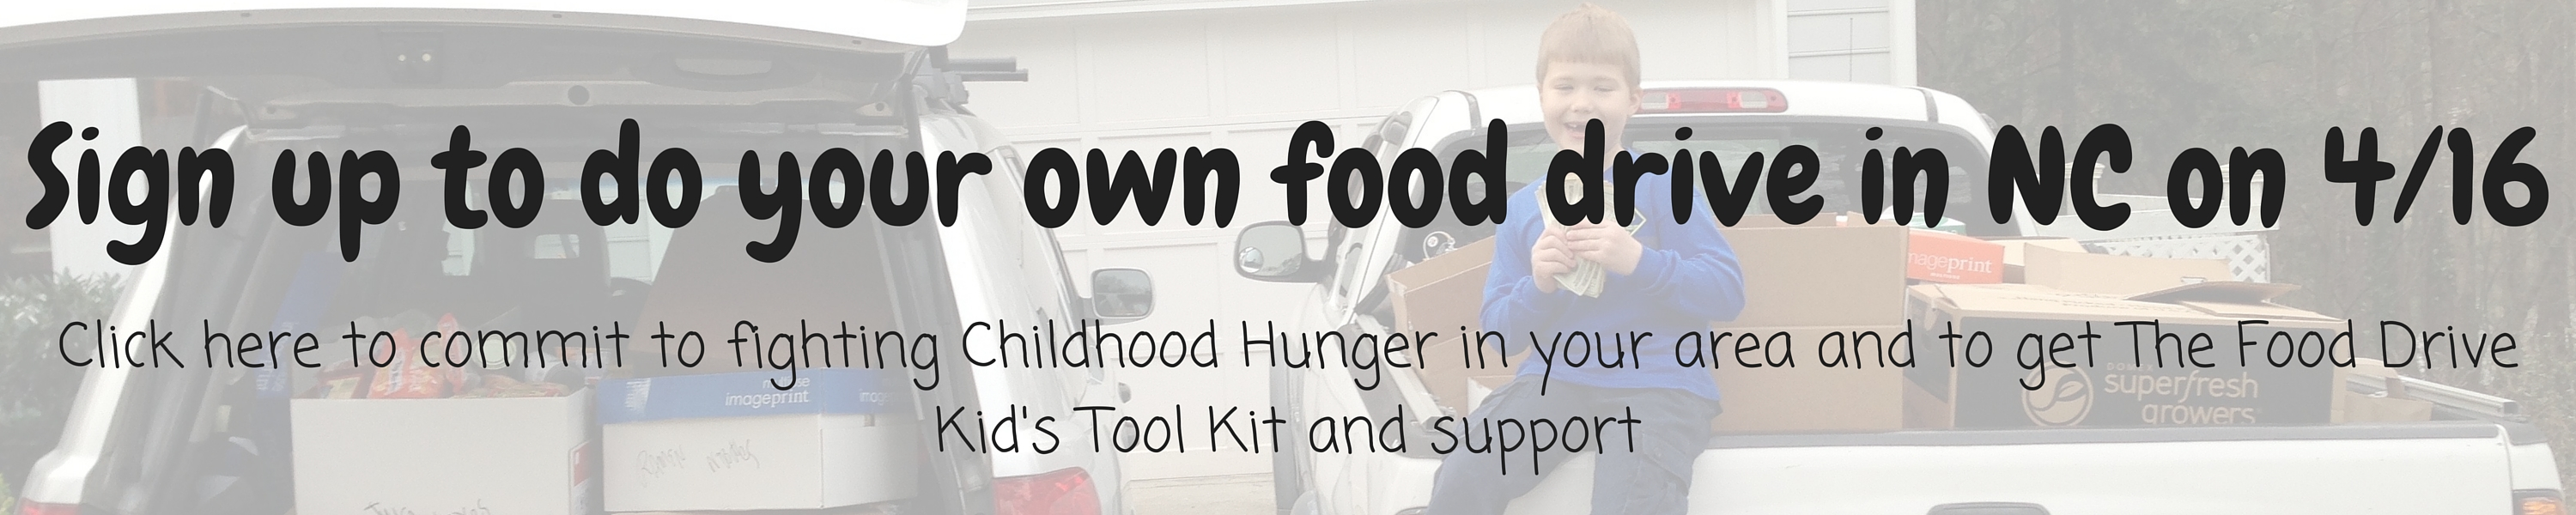 Sign up to do your own food drive in NC on 4-16